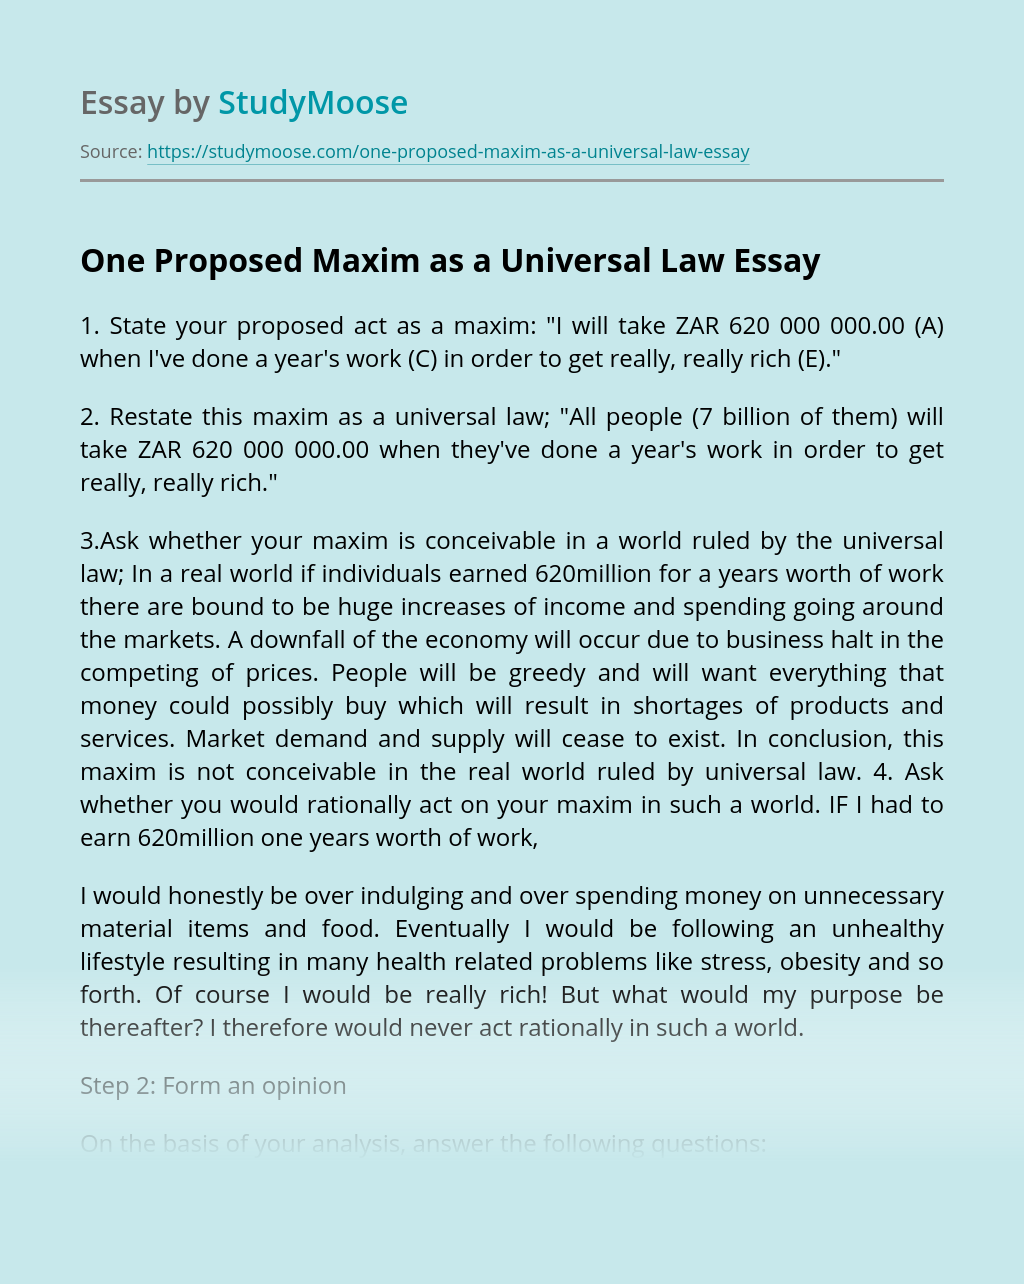 One Proposed Maxim as a Universal Law